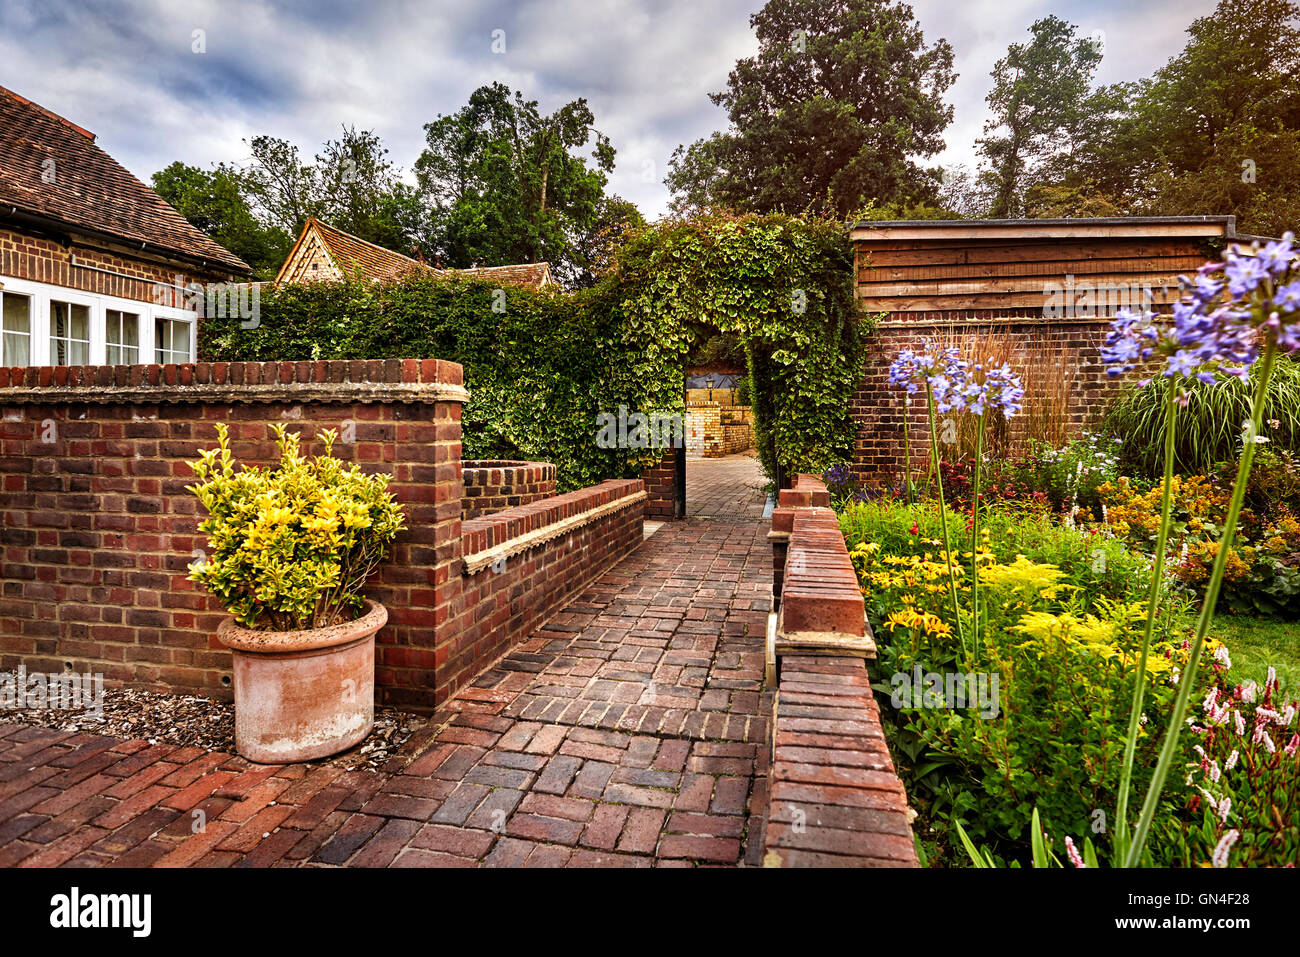 cottage courtyard house stockfotos cottage courtyard house bilder alamy. Black Bedroom Furniture Sets. Home Design Ideas